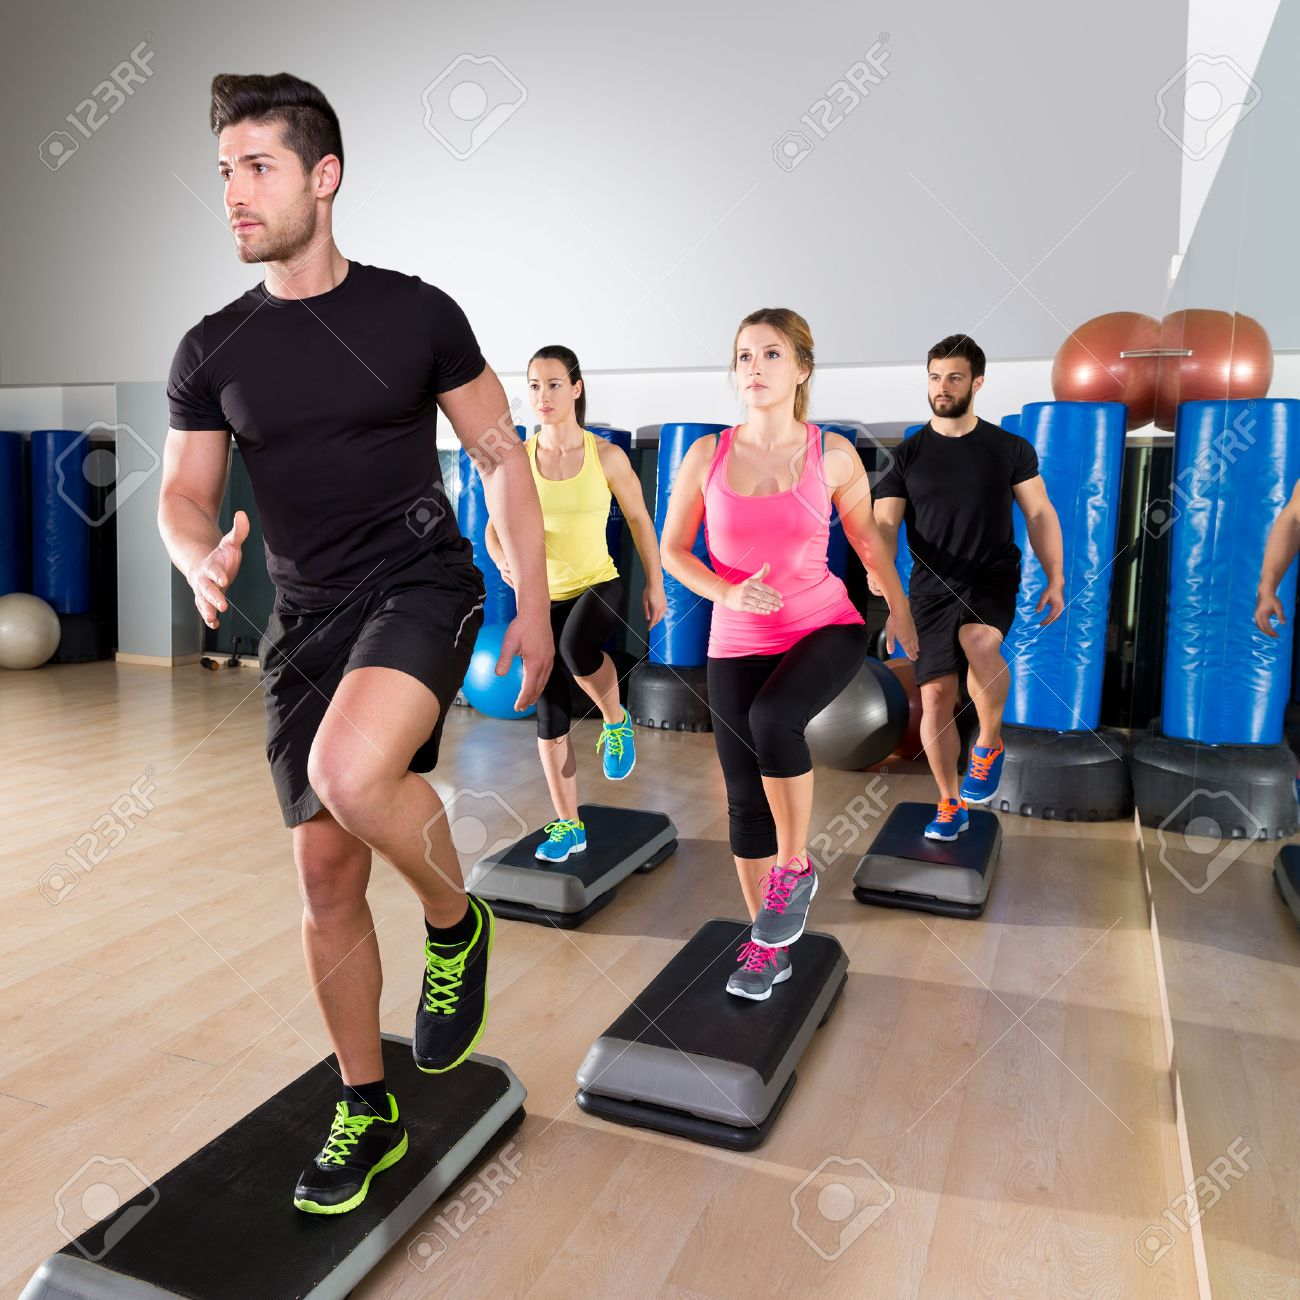 Cardio Step Dance People Group At Fitness Gym Training Workout Stock Photo